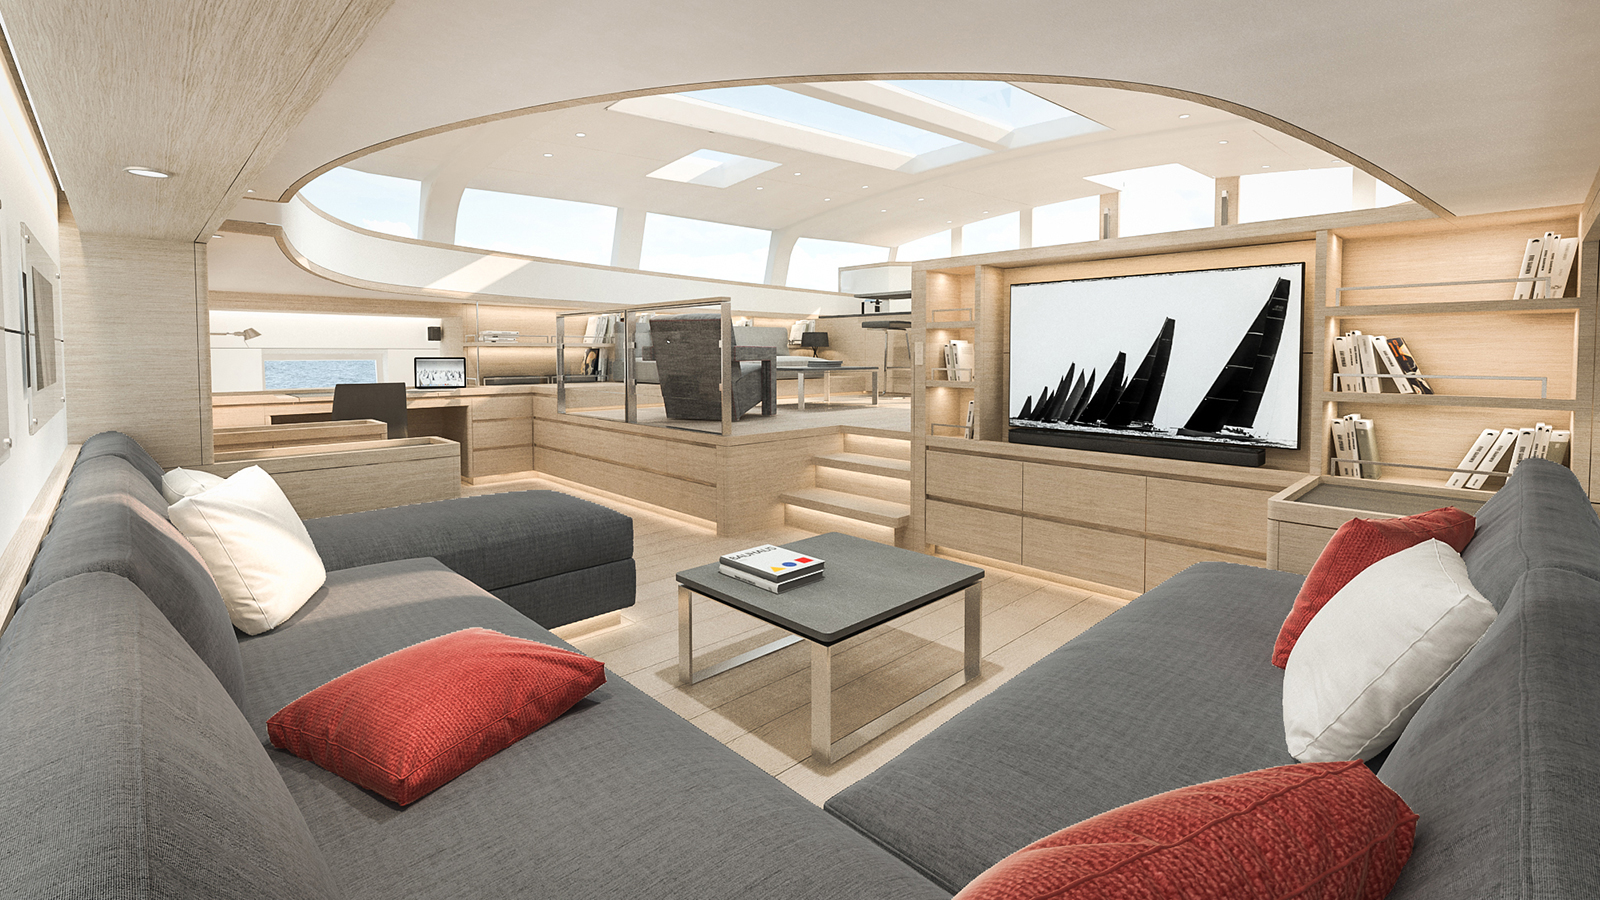 nauta-yachts-design-for-the-saloon-of-the-pendennis-refit-project-g2